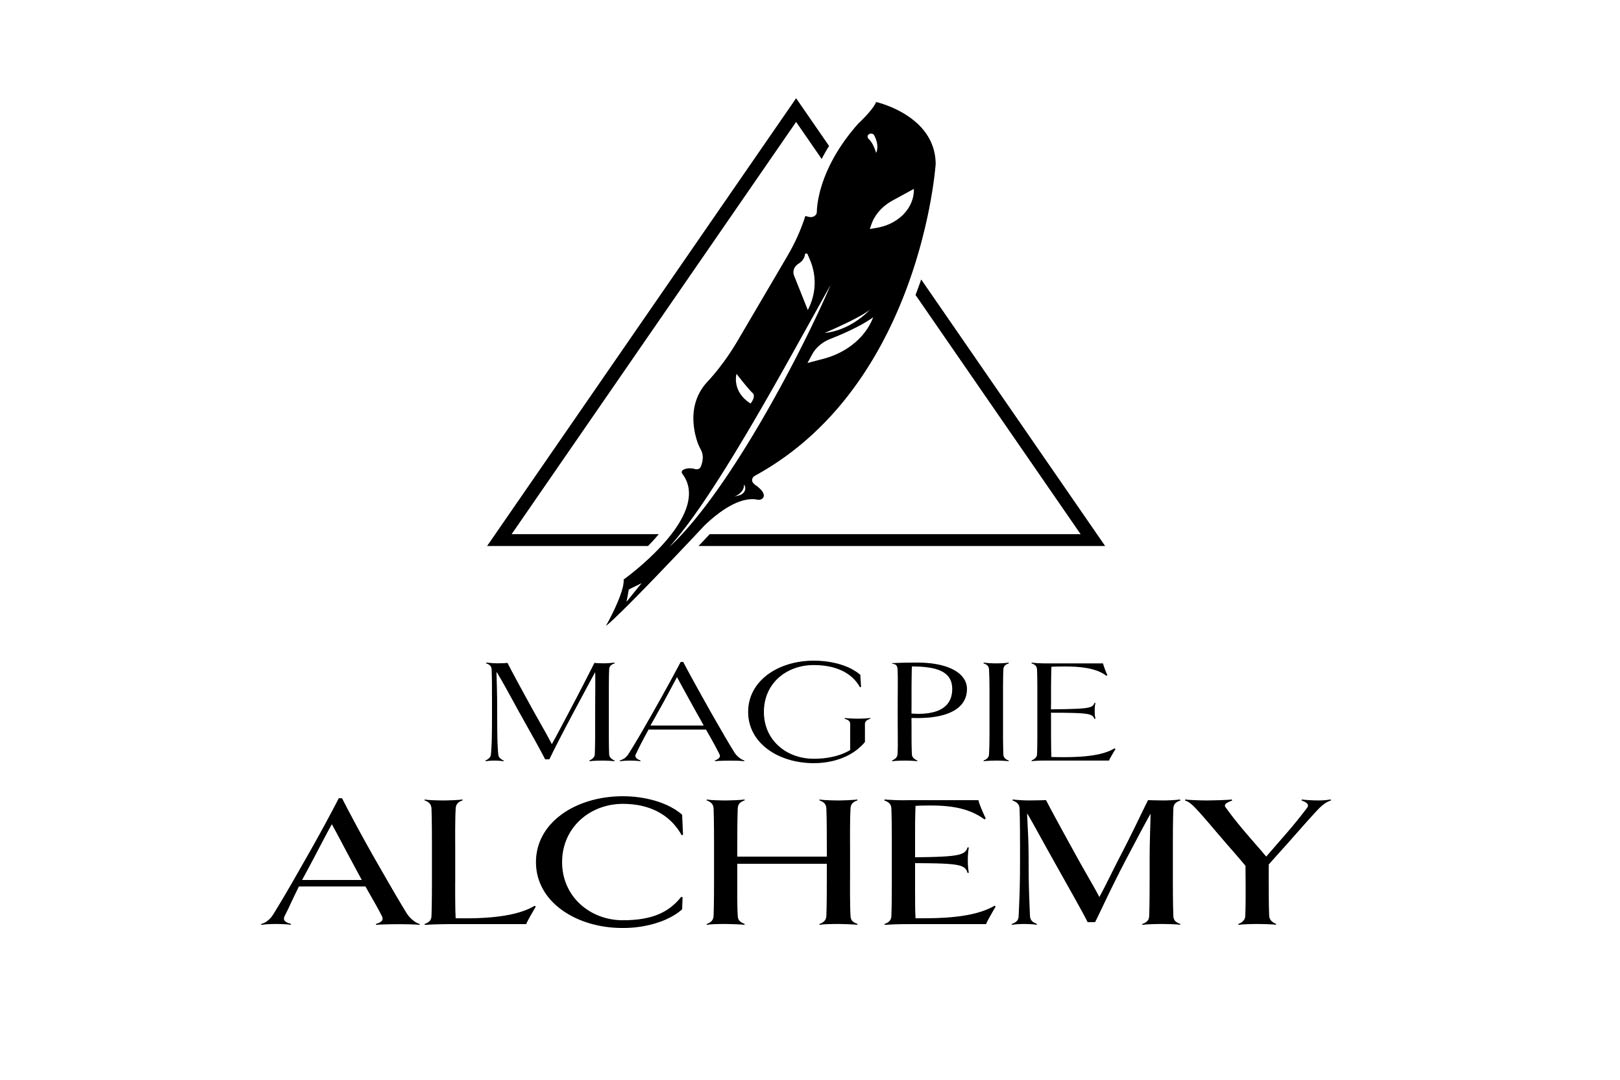 Magpie_Alchemy_logo_mock_0004_Layer 3